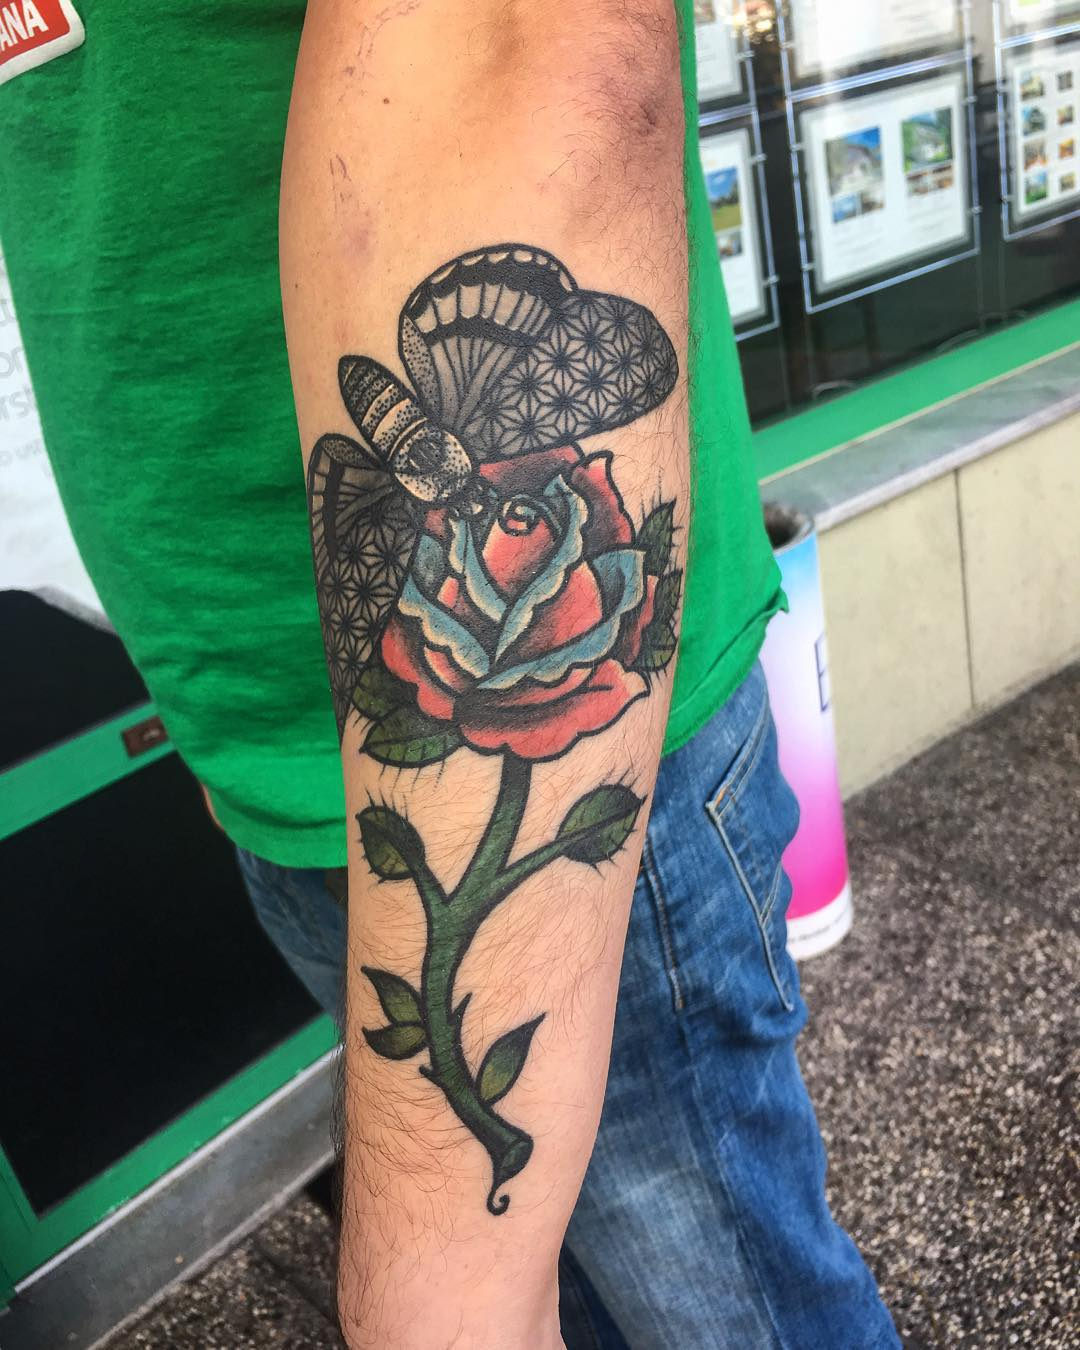 a classical tattoo plot - a butterfly sitting on the rose